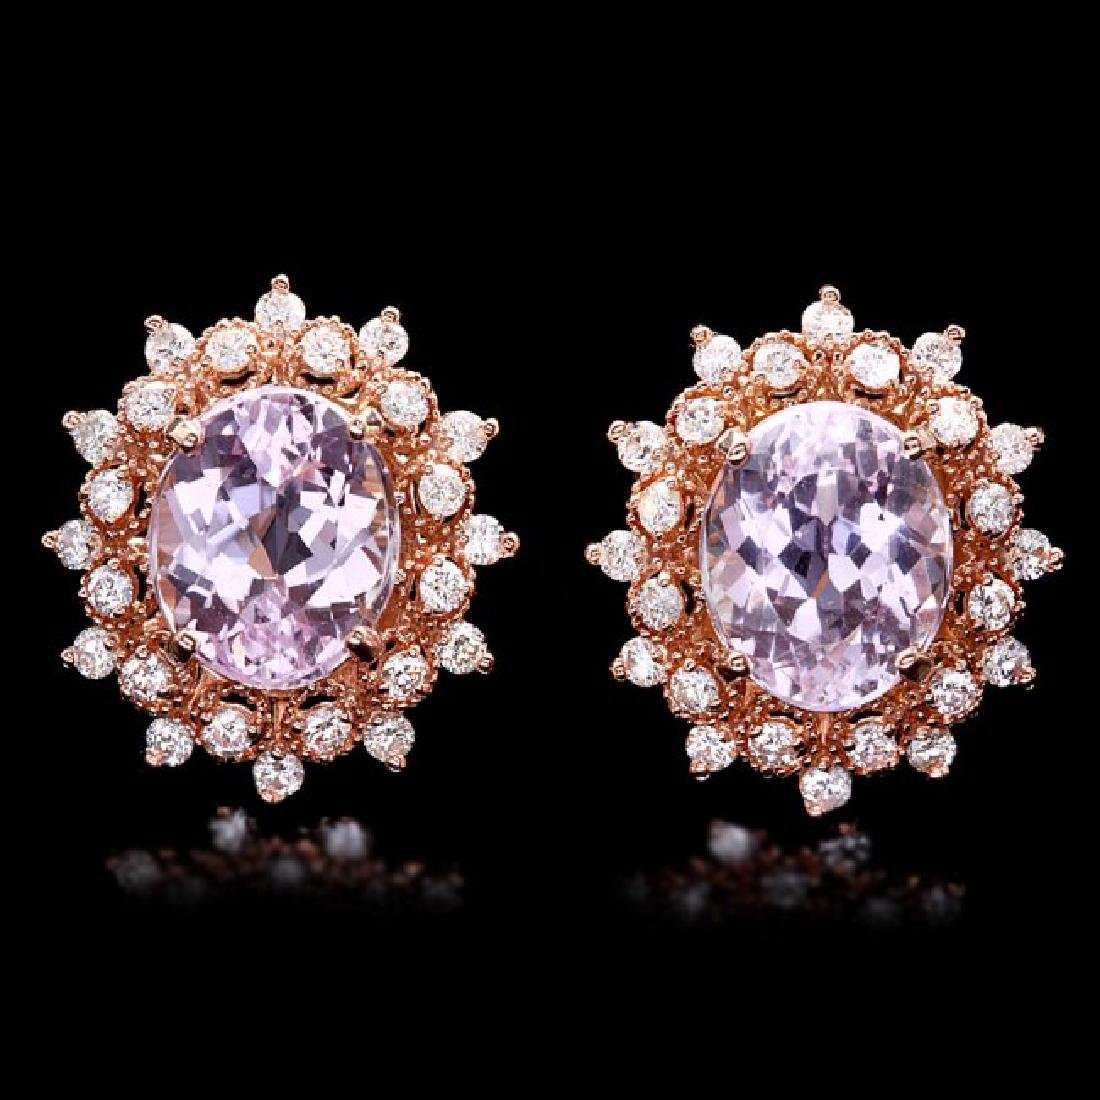 14k Rose 9.00ct Kunzite 1.30ct Diamond Earrings